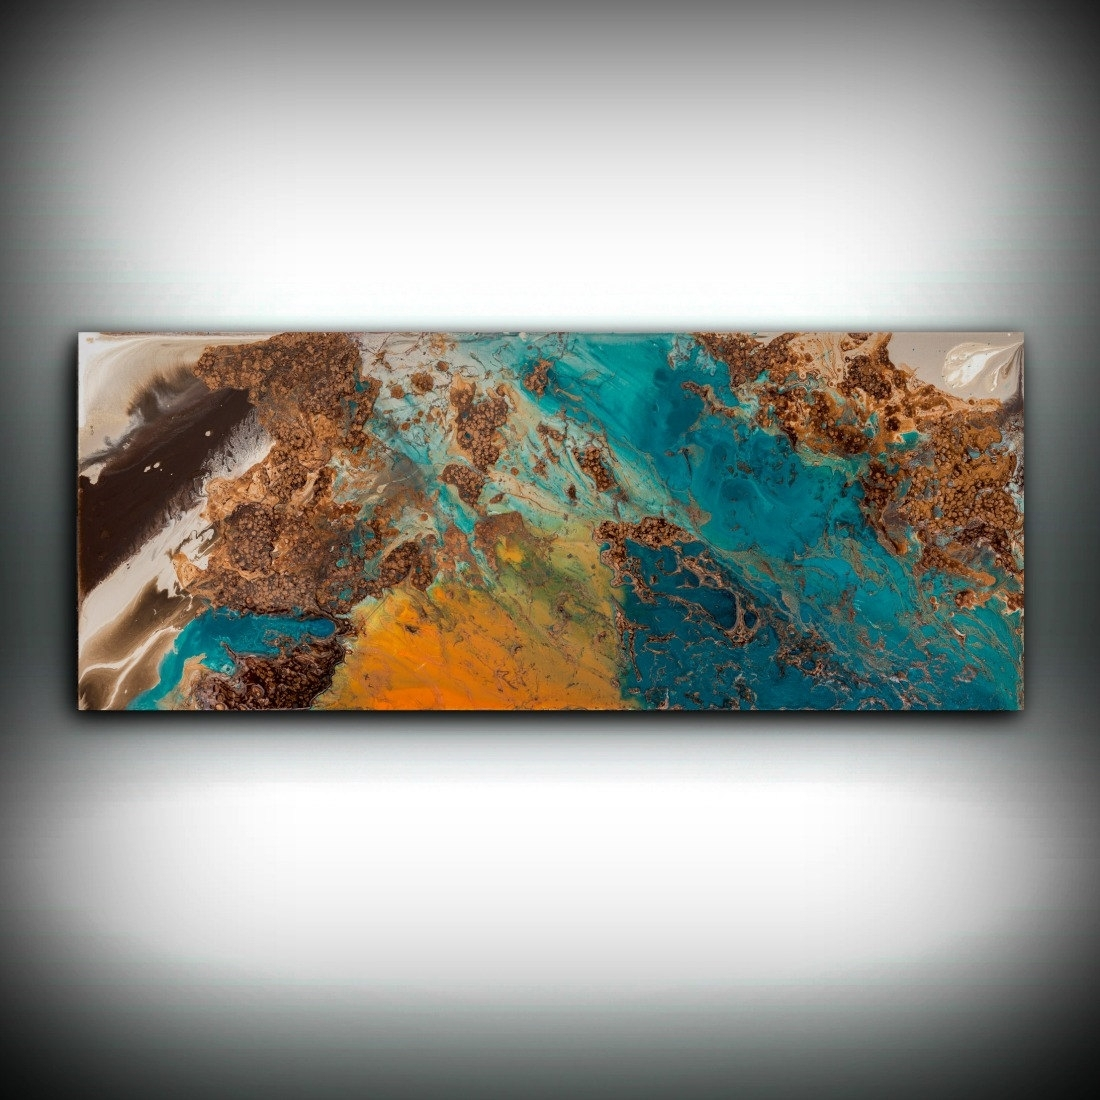 Sale Blue And Copper Art, Wall Art Prints Fine Art Prints Abstract With Regard To Most Up To Date Blue And Brown Canvas Wall Art (View 10 of 15)